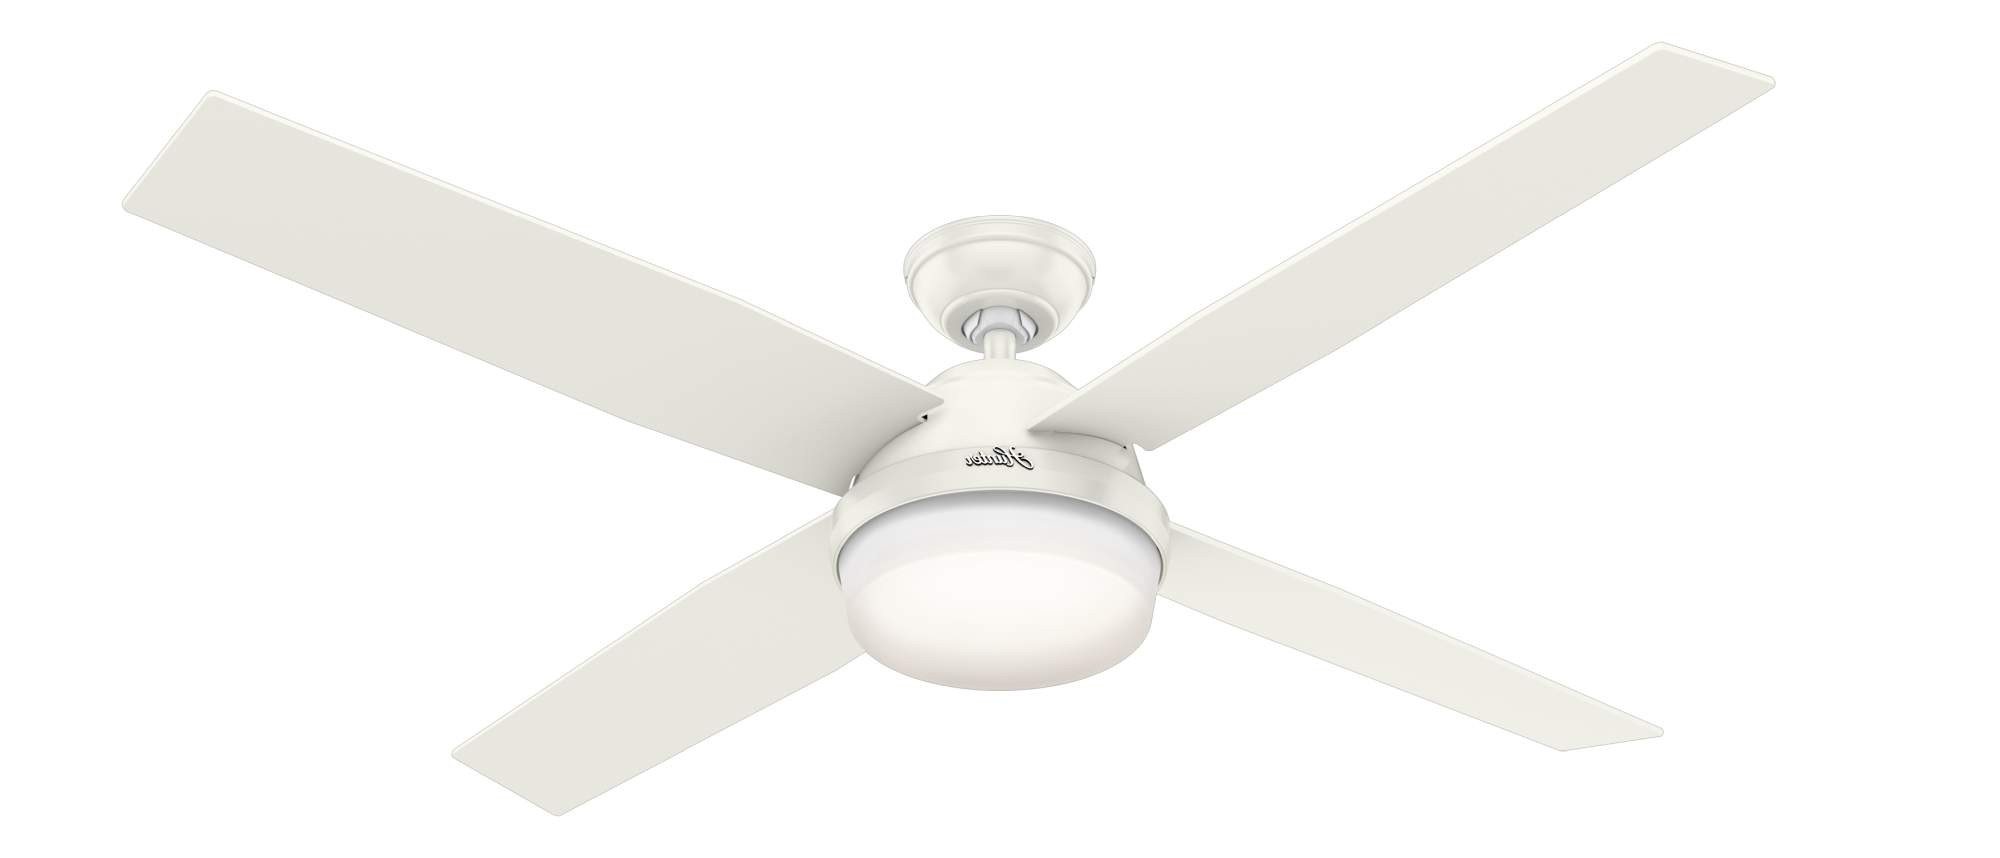 Widely Used Hunter Dempsey 60 Light Ceiling Fan Model 59442 In Dempsey 4 Blade Ceiling Fans (View 20 of 20)